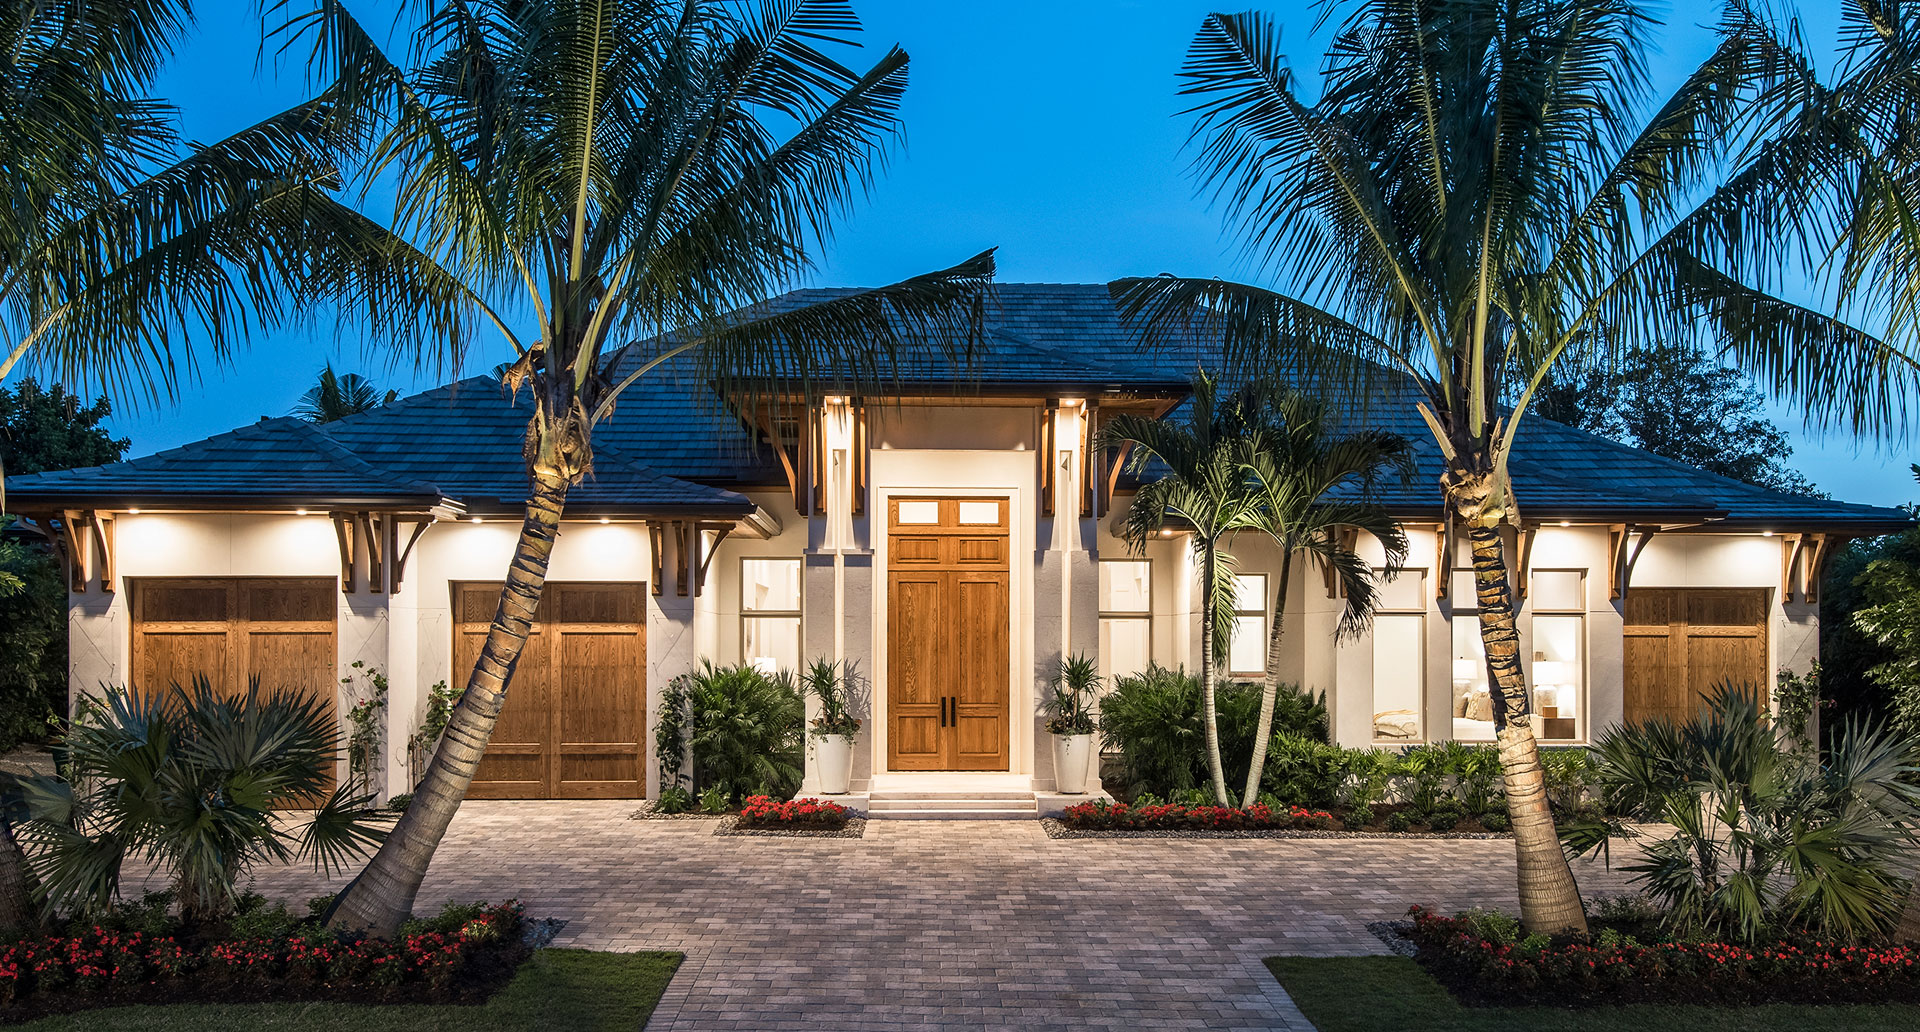 Calusa Bay Design Home Design Magazine Coastal Chic A Unique Take On Classic Design